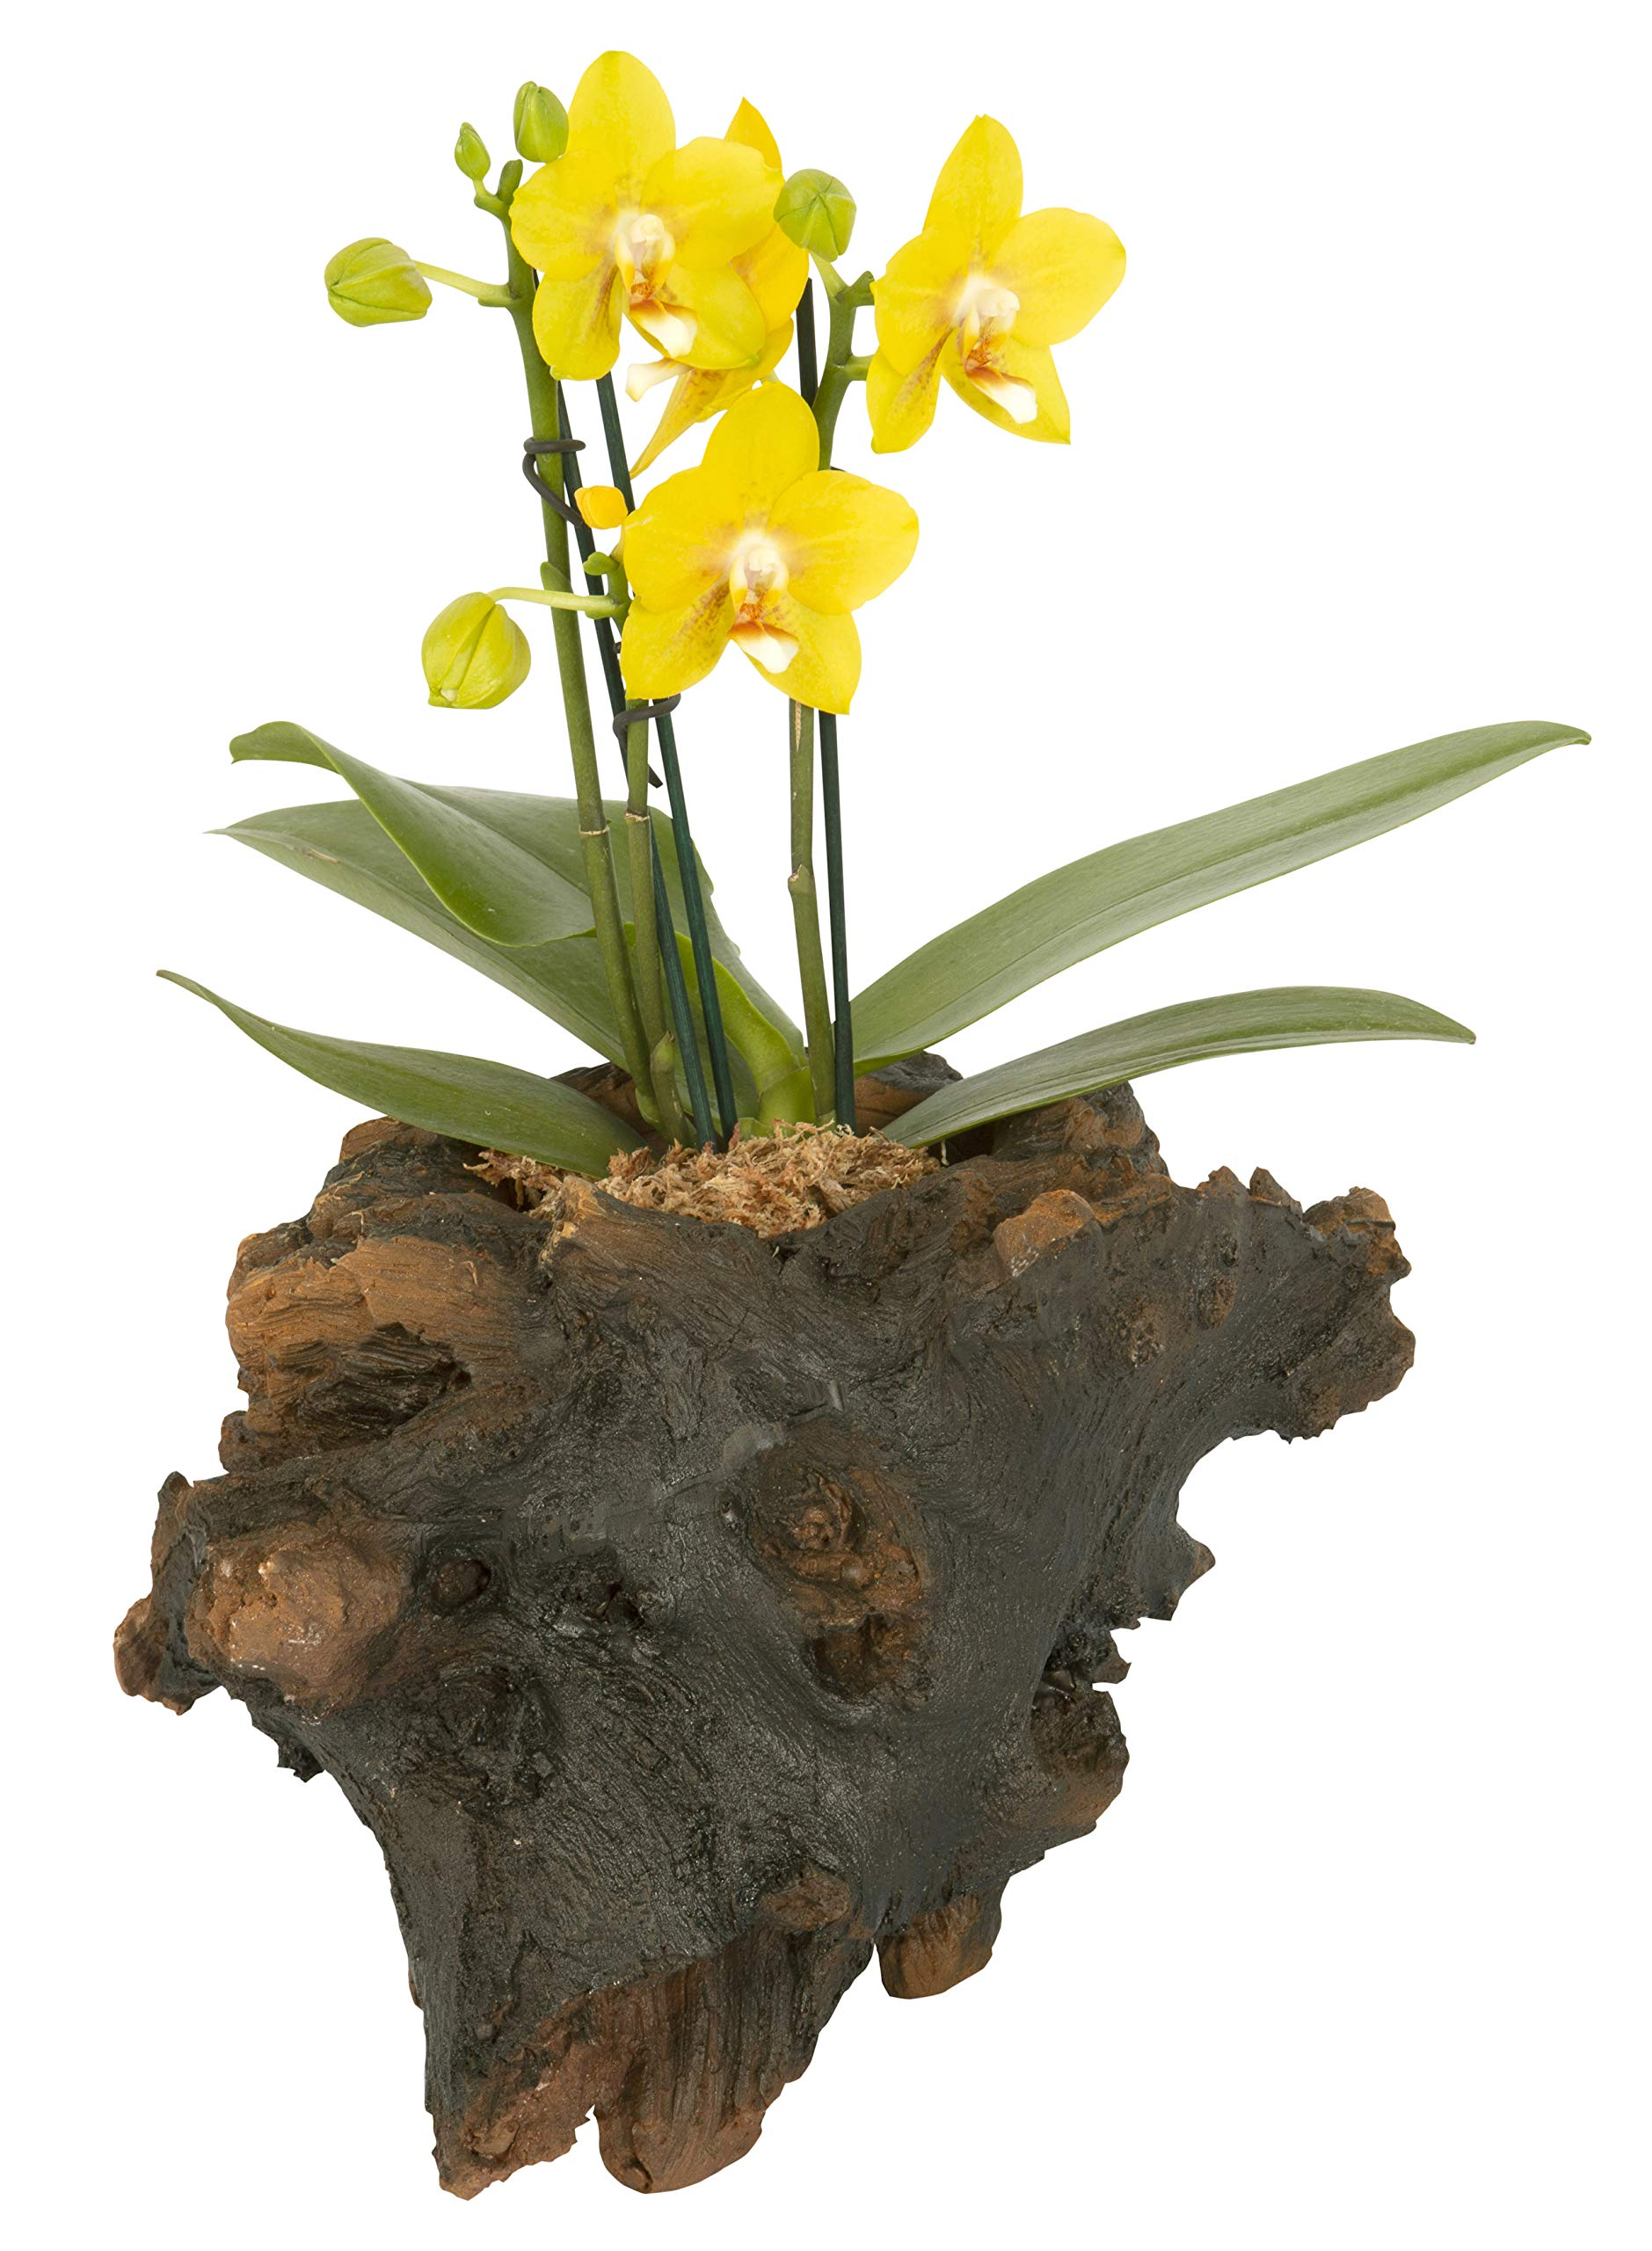 Color Orchids Live Blooming Double Stem Phalaenopsis Orchid Plant in Ceramic Pot, 15'' - 20'' Tall Yellow